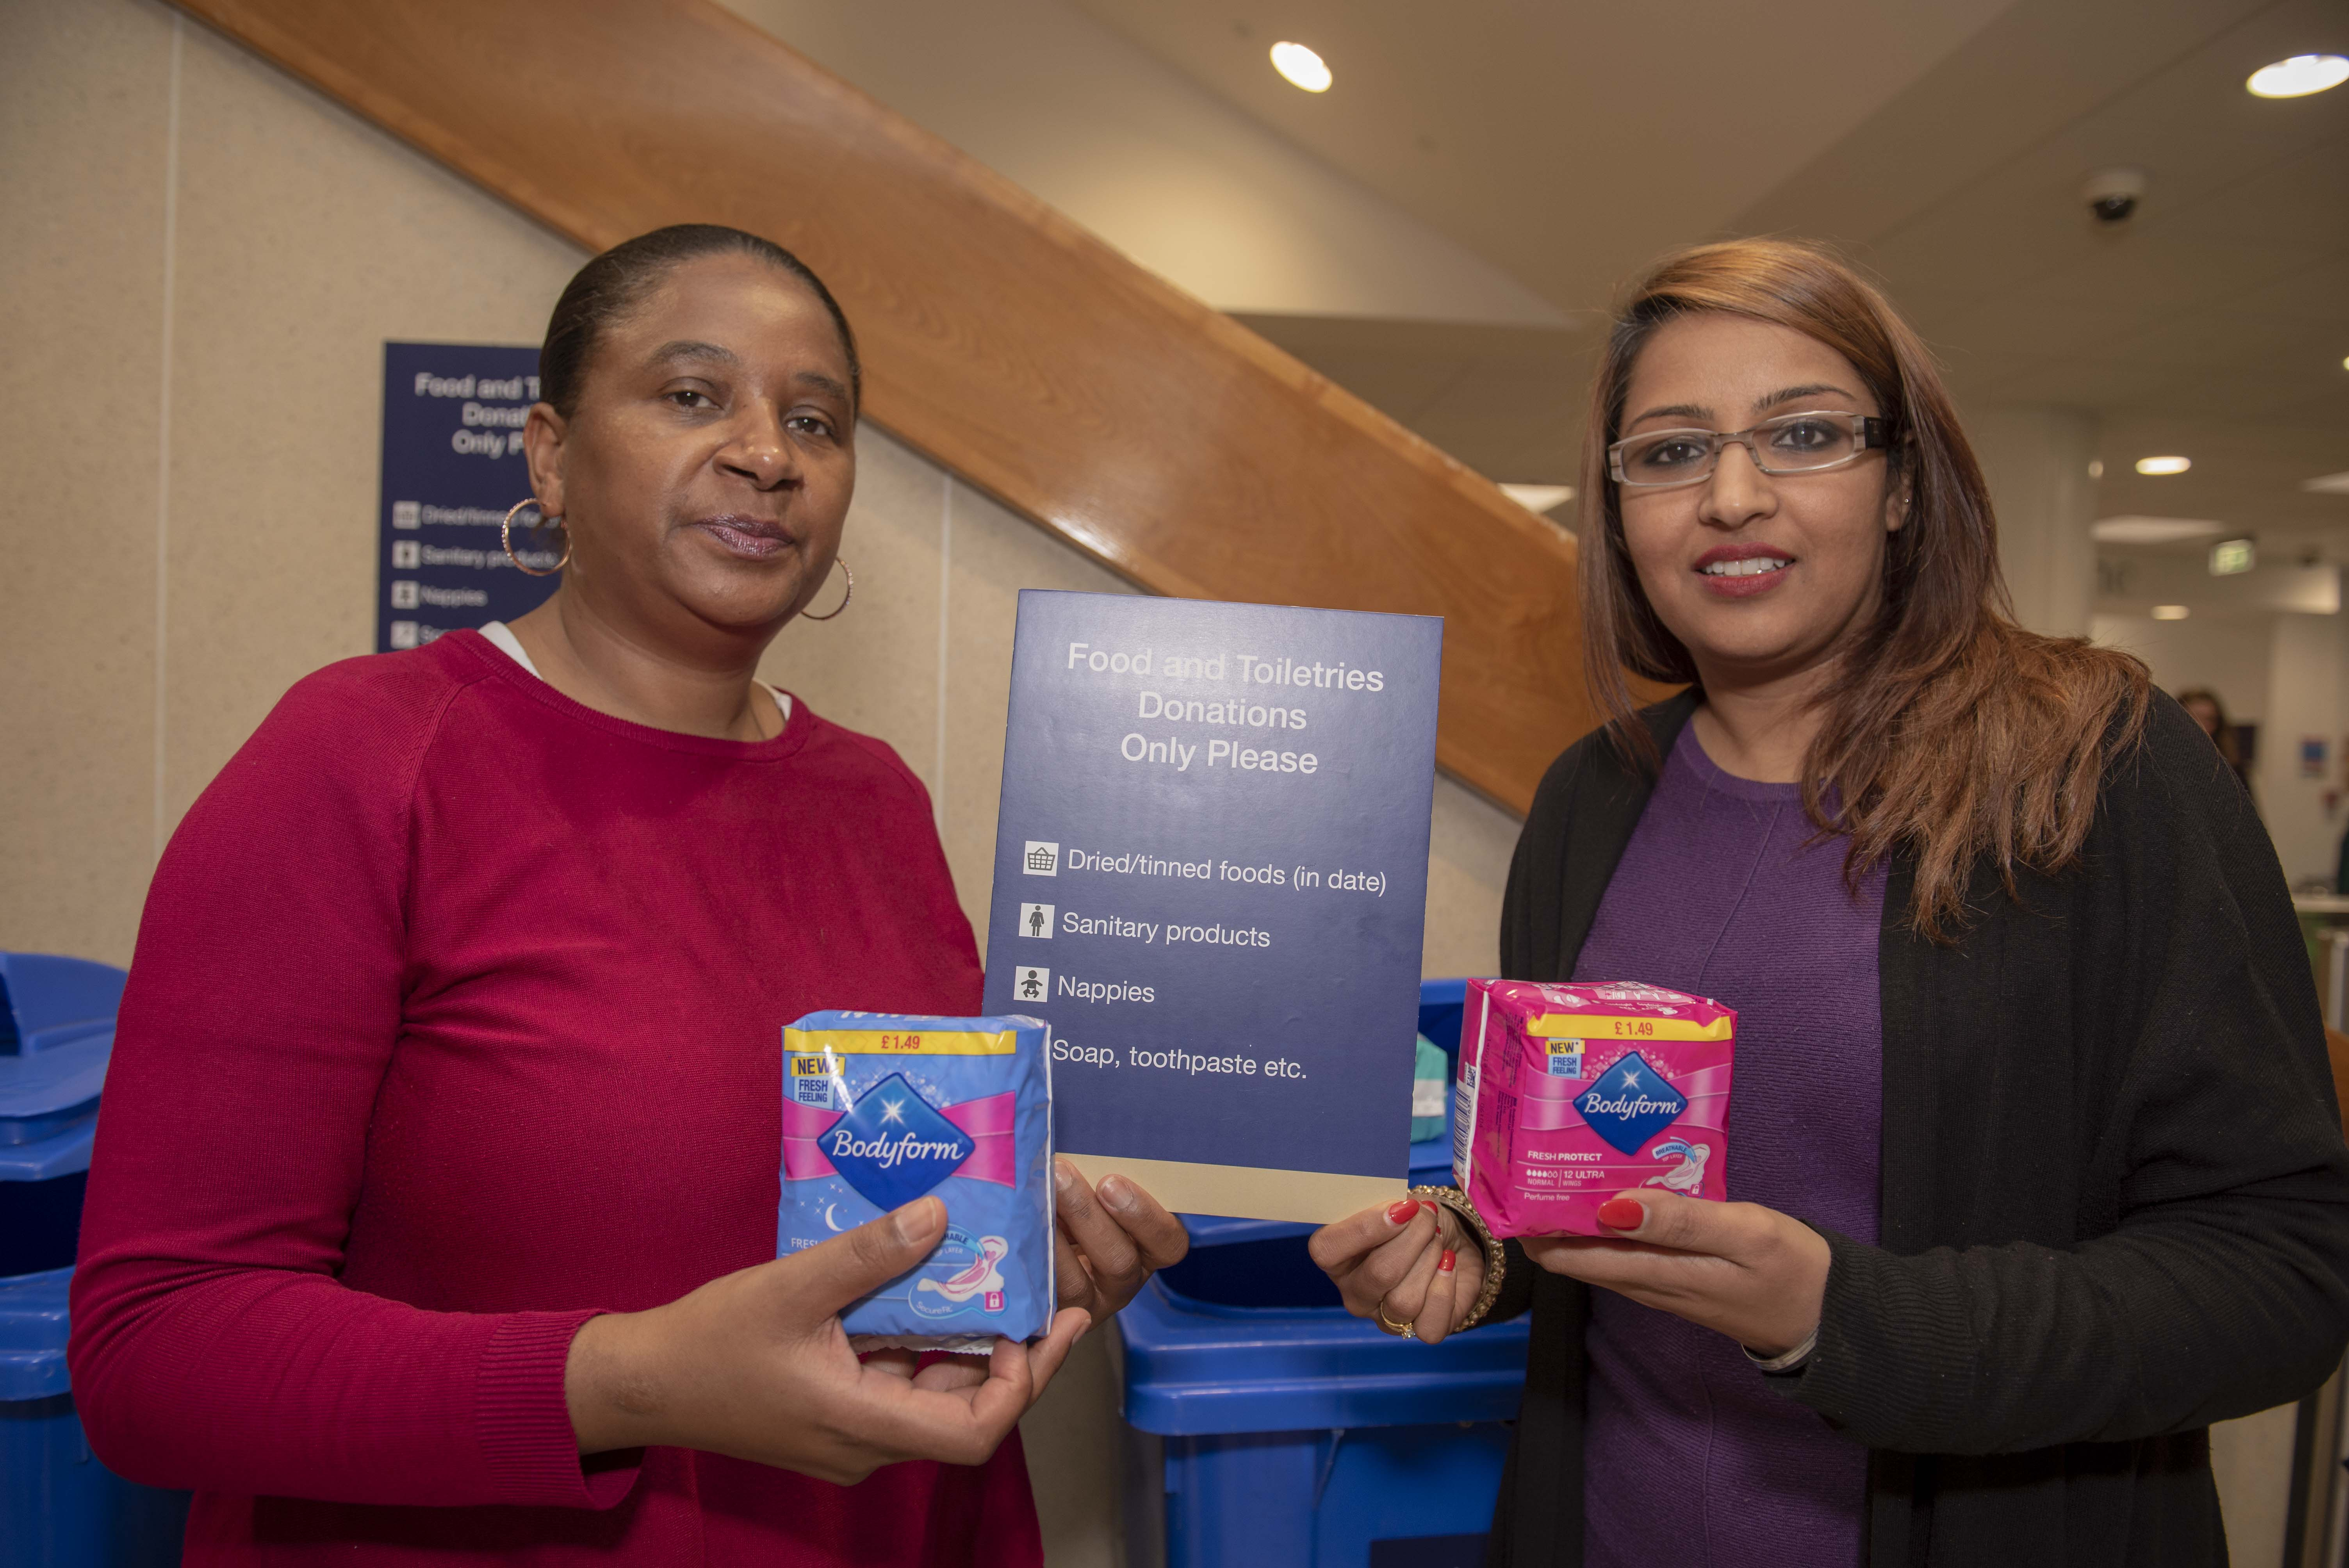 Donate sanitary products and help tackle period poverty